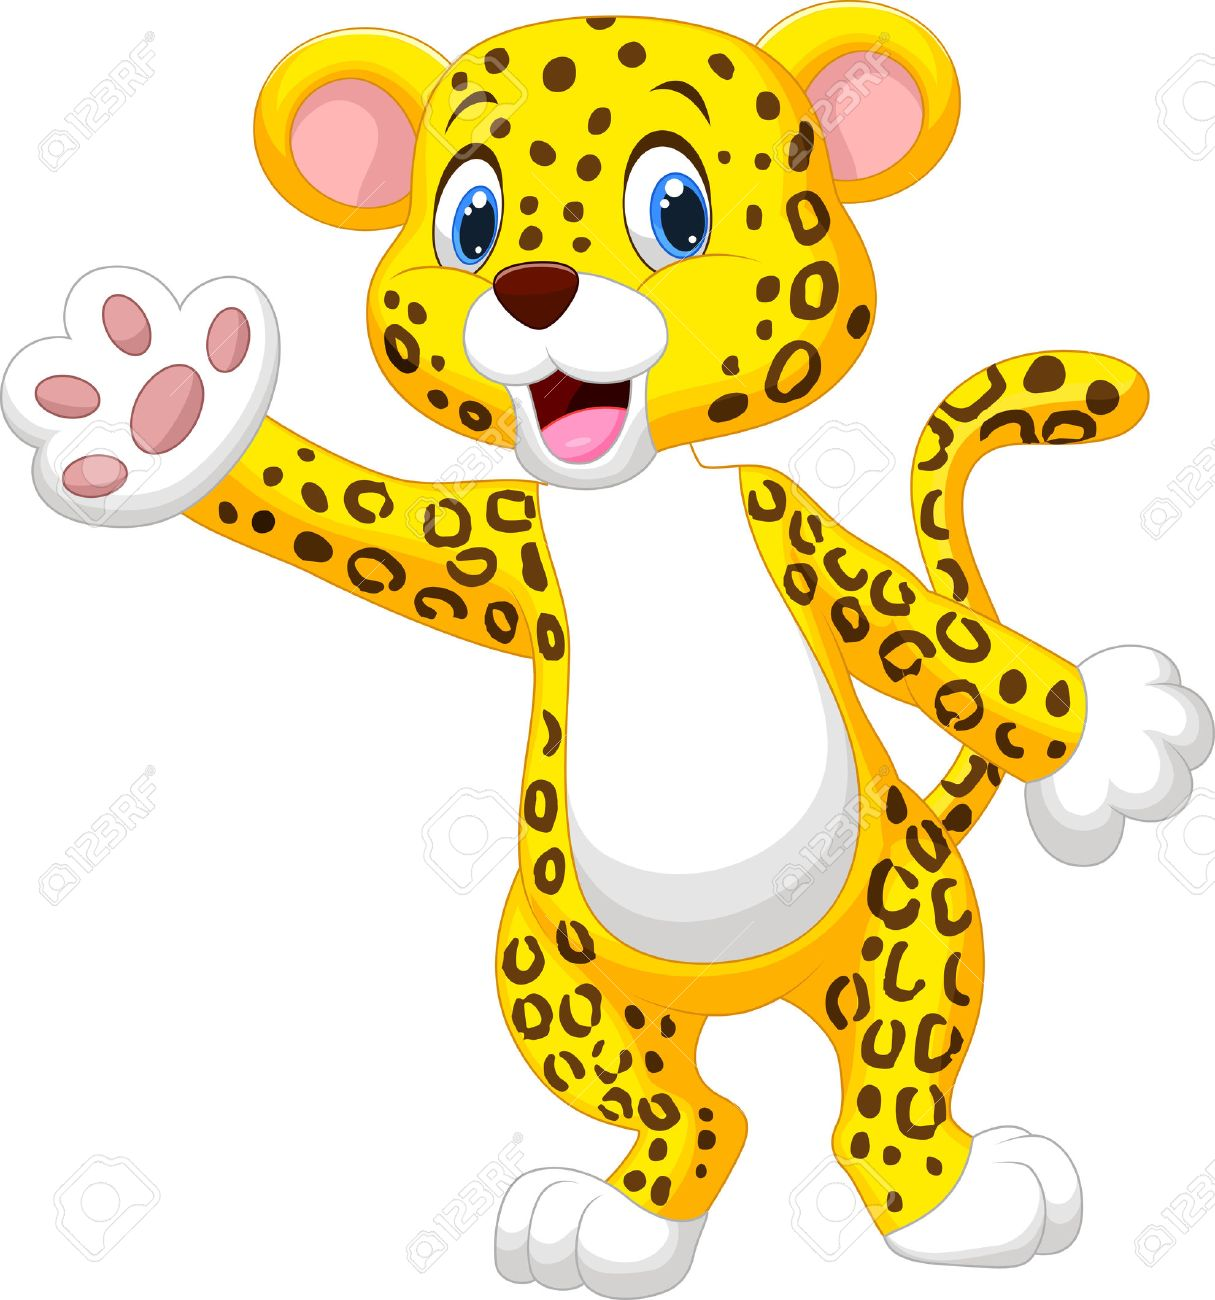 Cute Cartoon Leopard Waving Hand Royalty Free Cliparts, Vectors ... for Clipart Leopard Cute  111ane